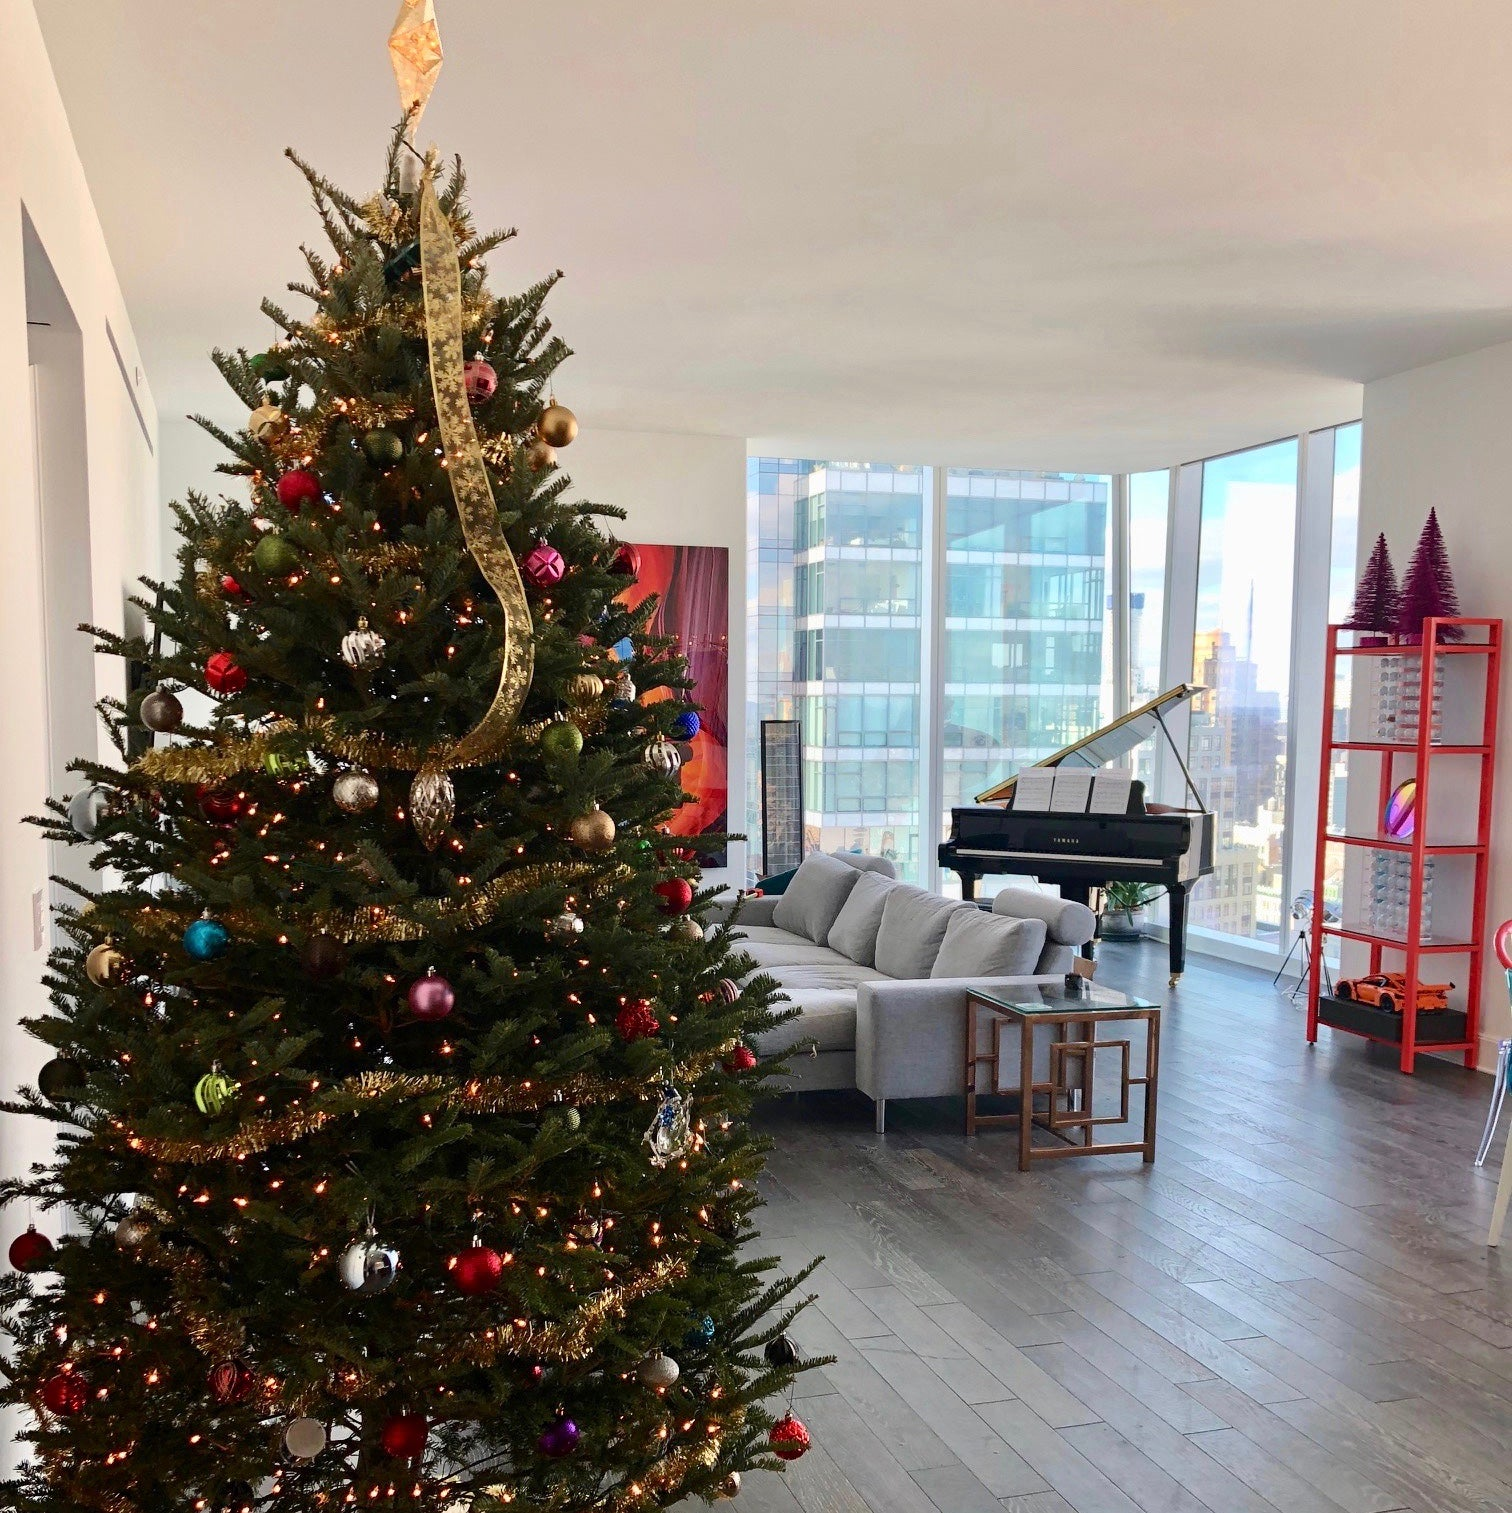 Decorated fresh-cut Frasier Fir Christmas tree in residential living room